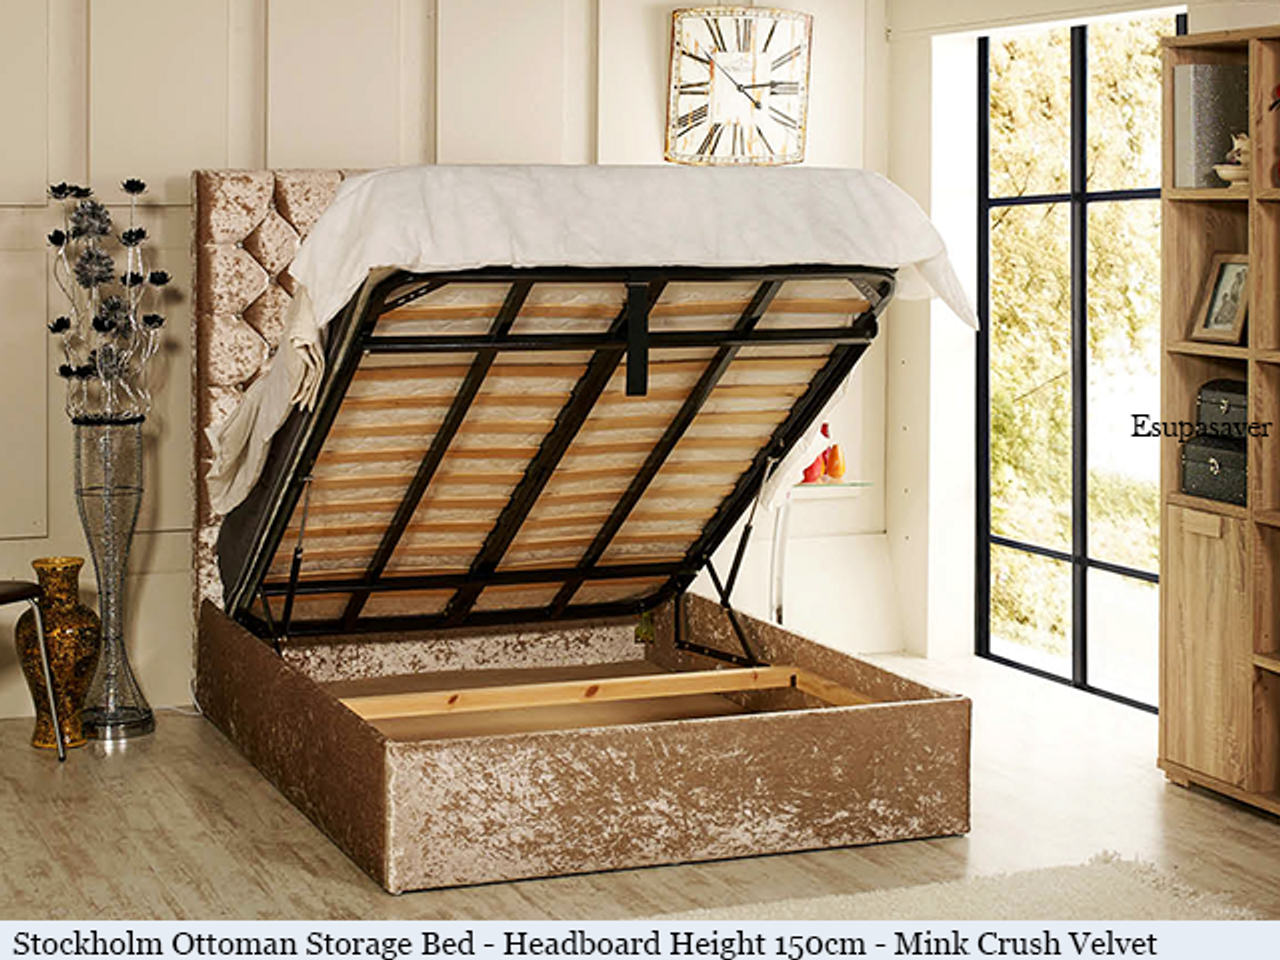 Stockholm gas lift ottoman bed shown in mink crush velvet fabric with diamante buttons